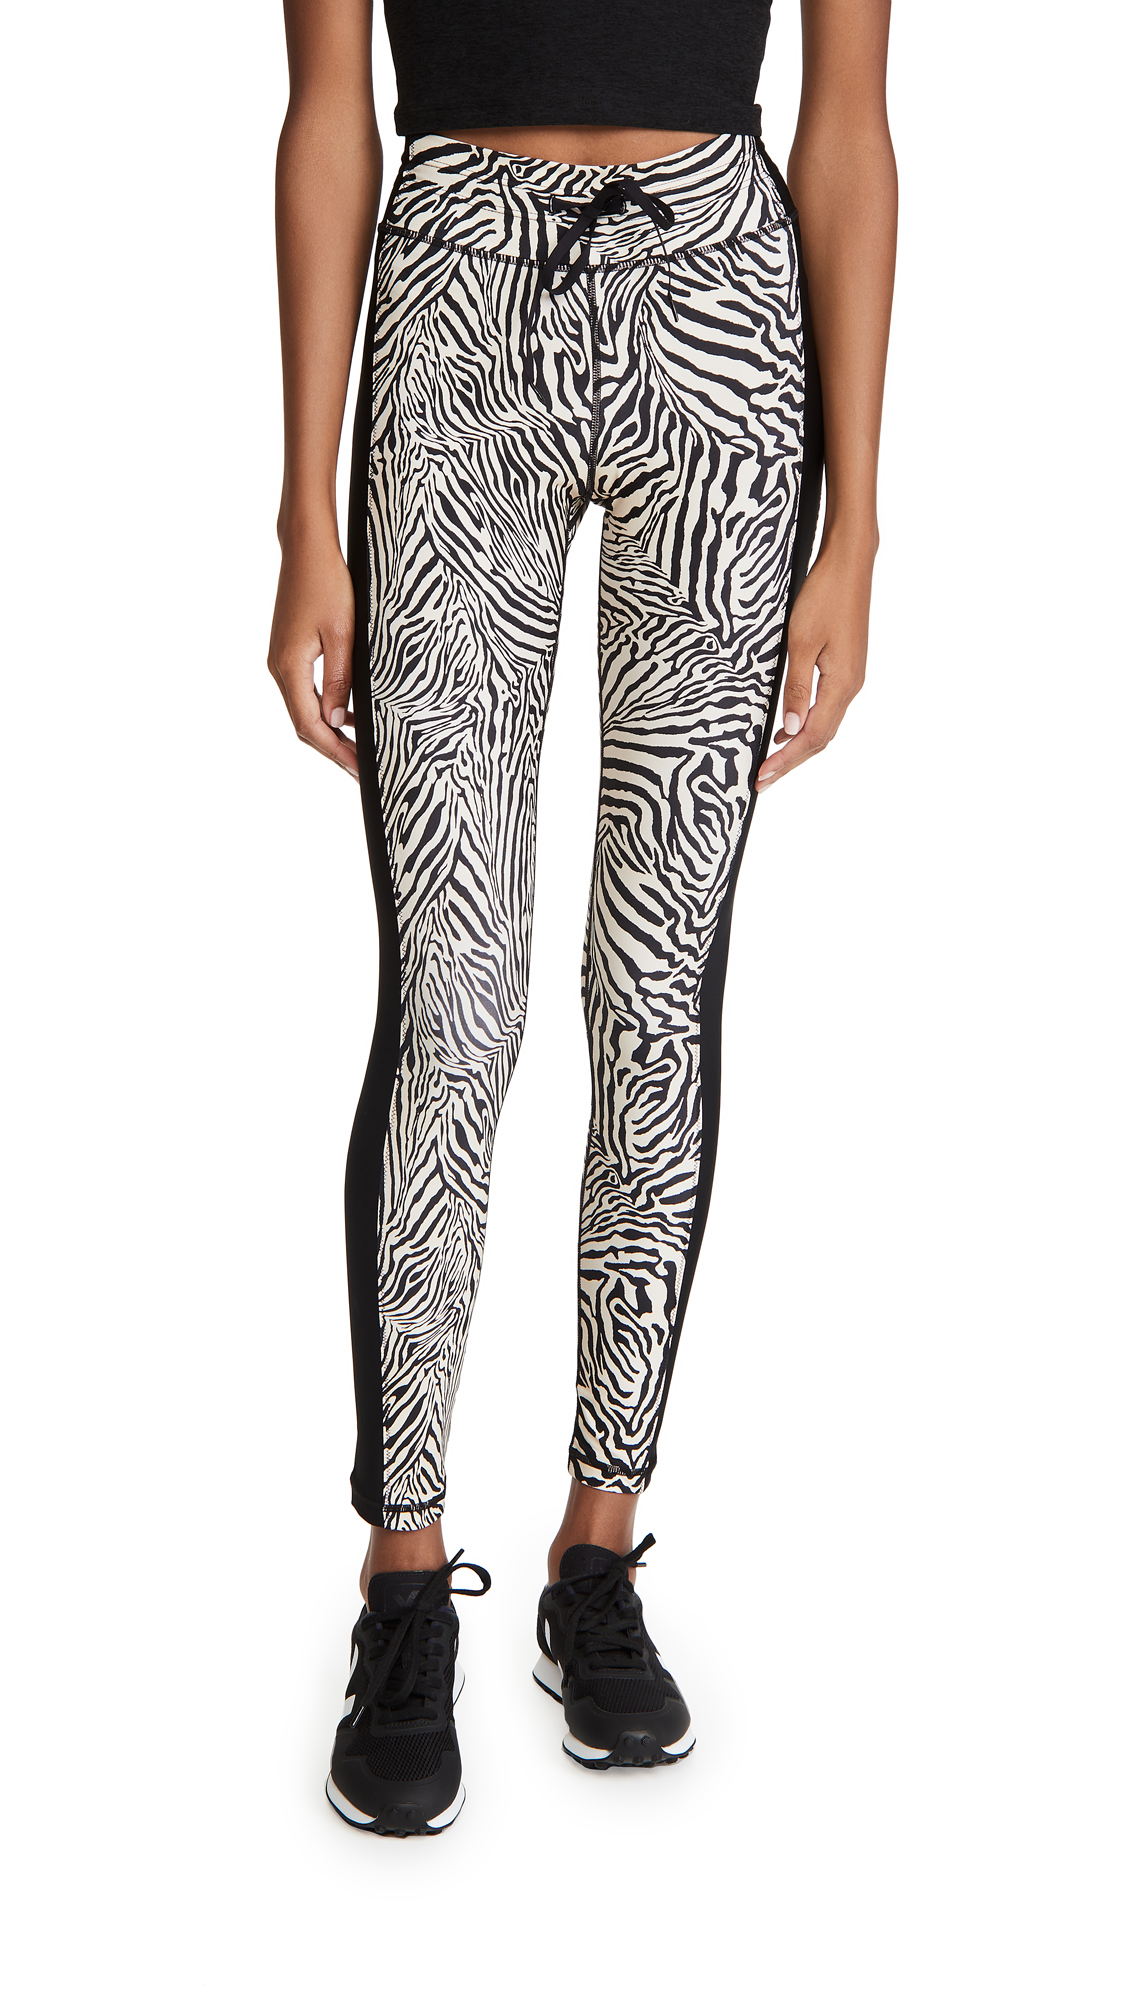 The Upside Zebra Yoga Pants